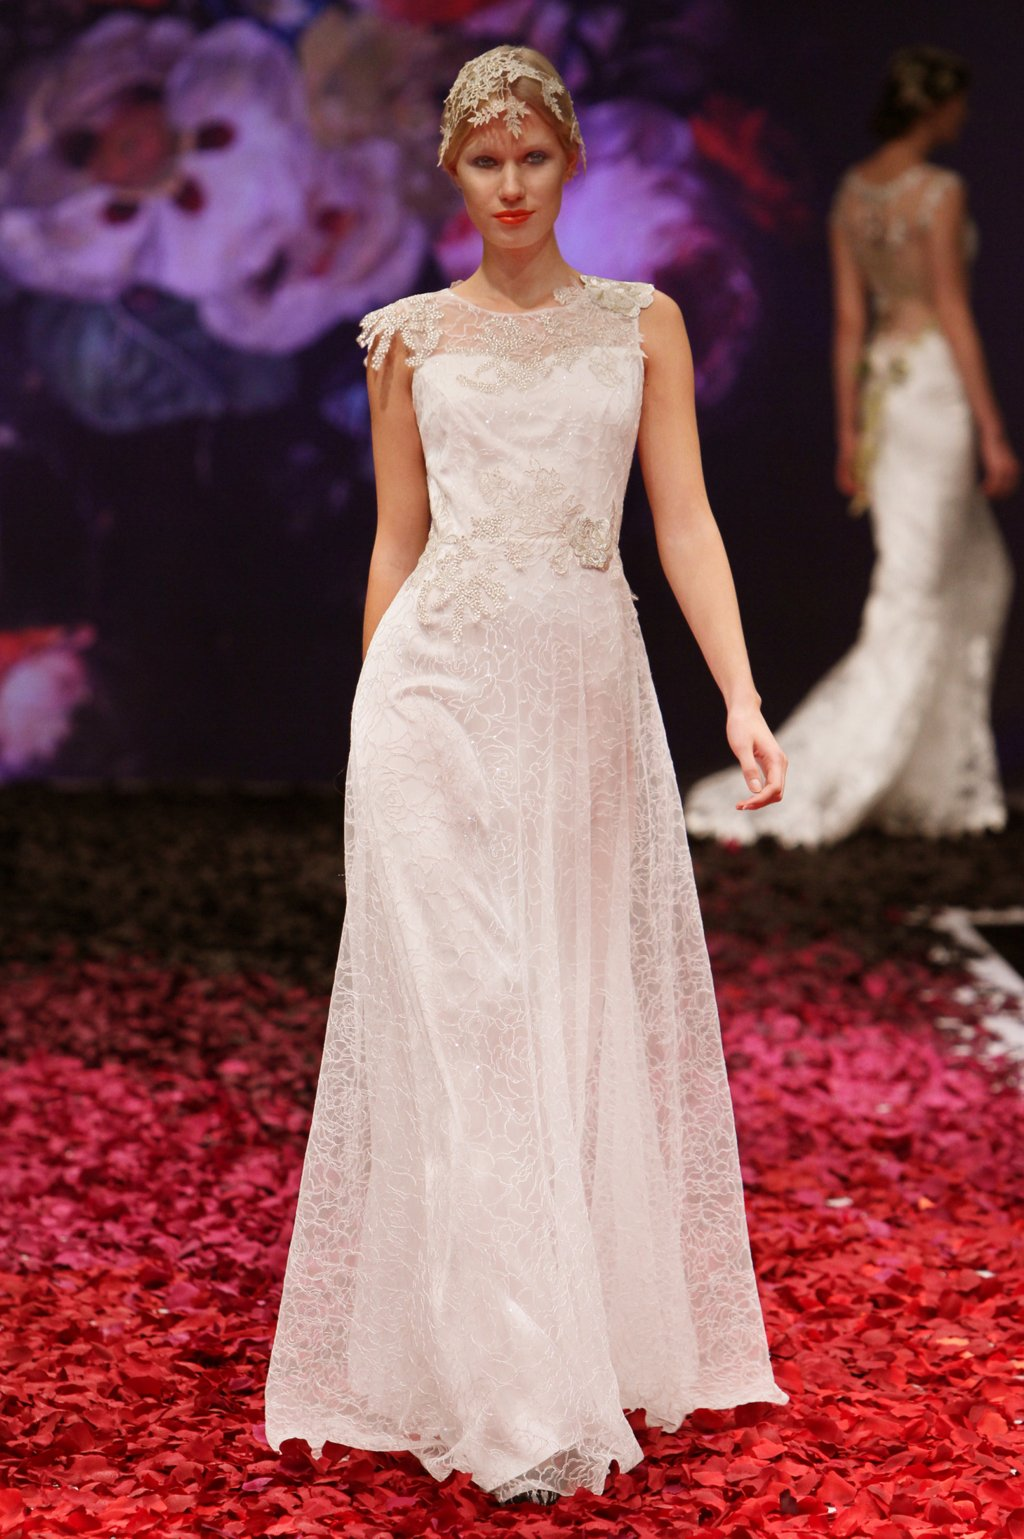 Gossamer-wedding-dress-by-claire-pettibone-2014-still-life-bridal-collection.full